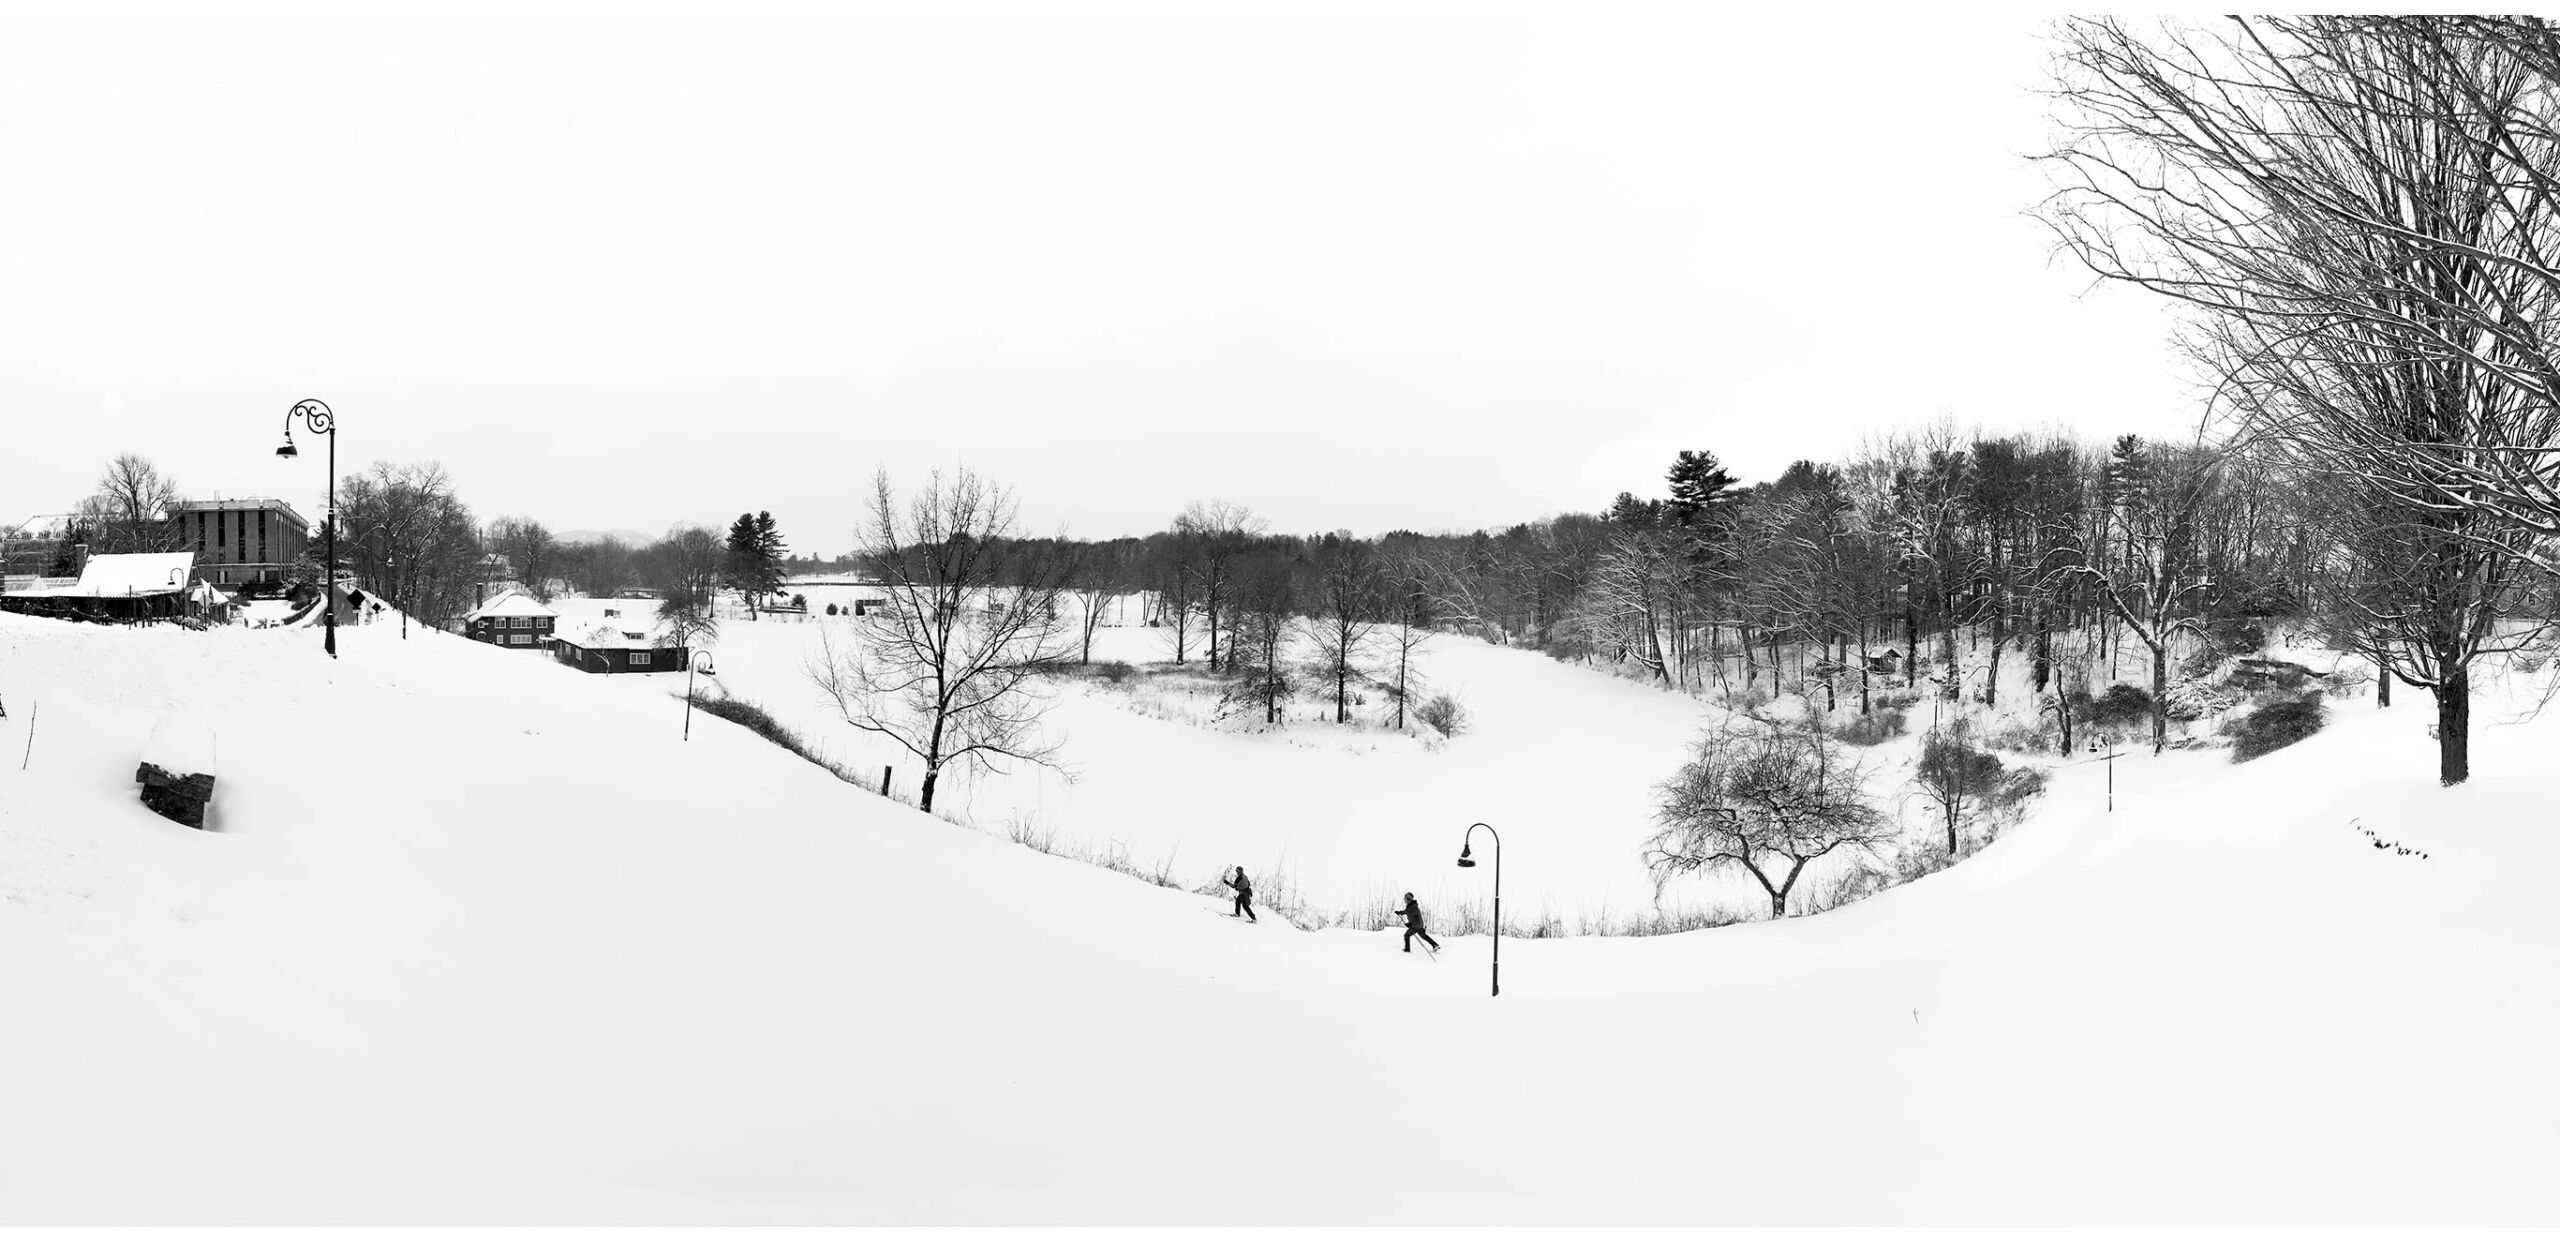 Smith College campus and Paradise Pond in winter, Northampton, MA 01060.